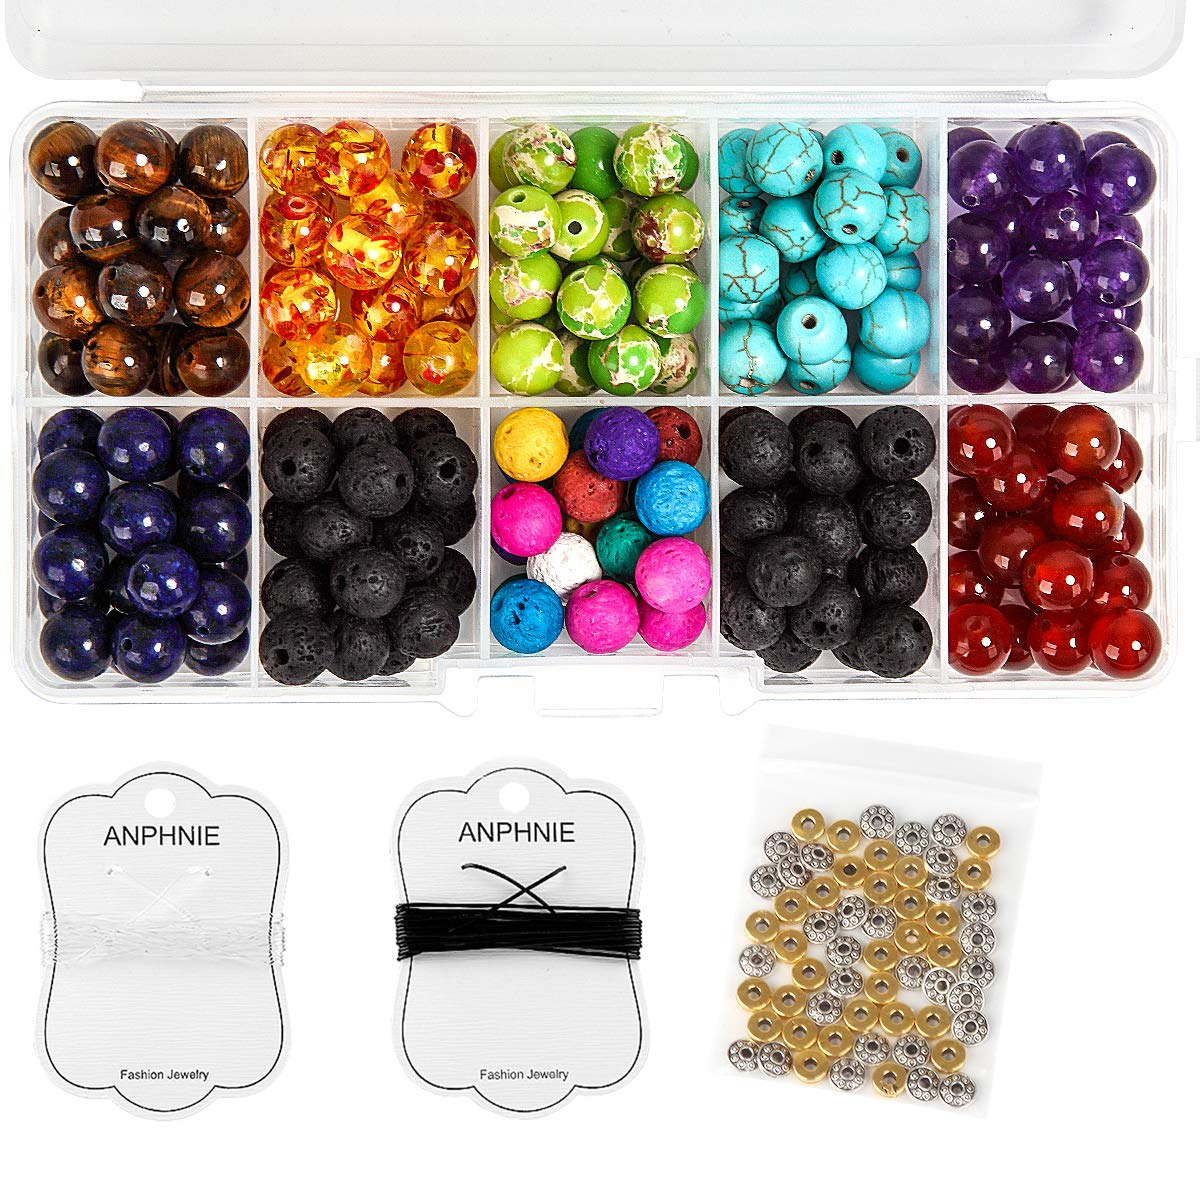 Lava Beads Kit for Essential Oils - 260pcs Assorted Colorful Natural Chakra Beads, Colored Loose Volcanic Lava Rock Stone Beads Balls, Spacer Beads for Jewelry Making US Beads Supplies